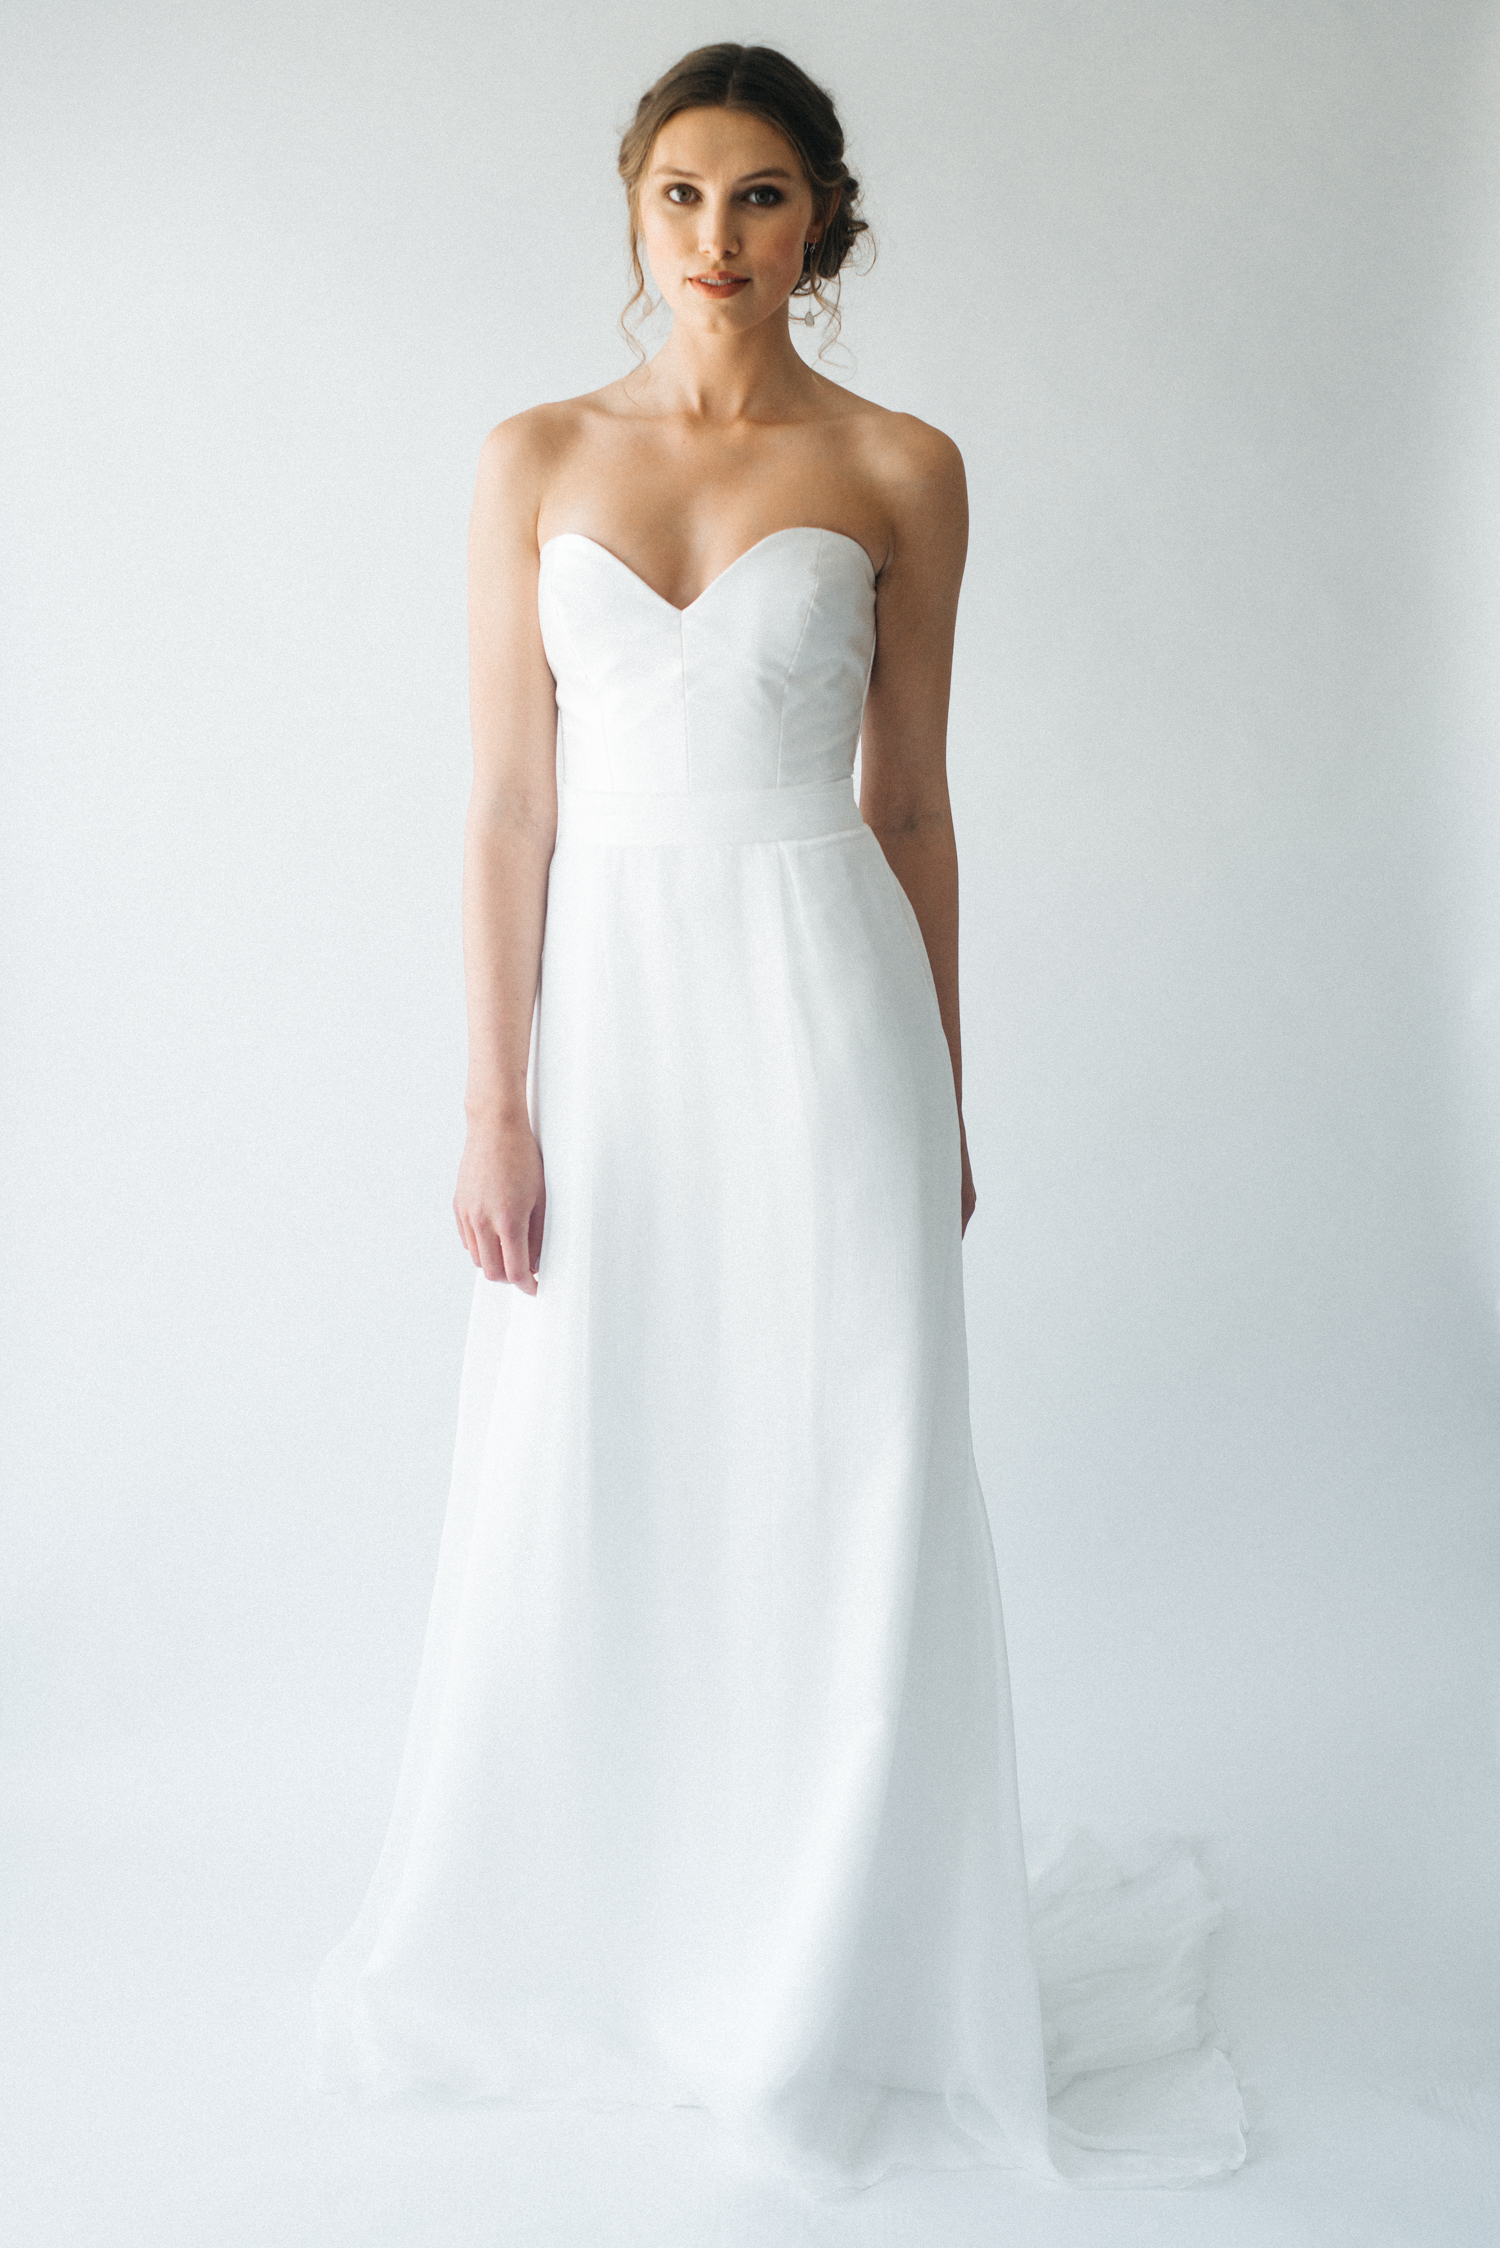 Gwith and Frosa silk wedding dress